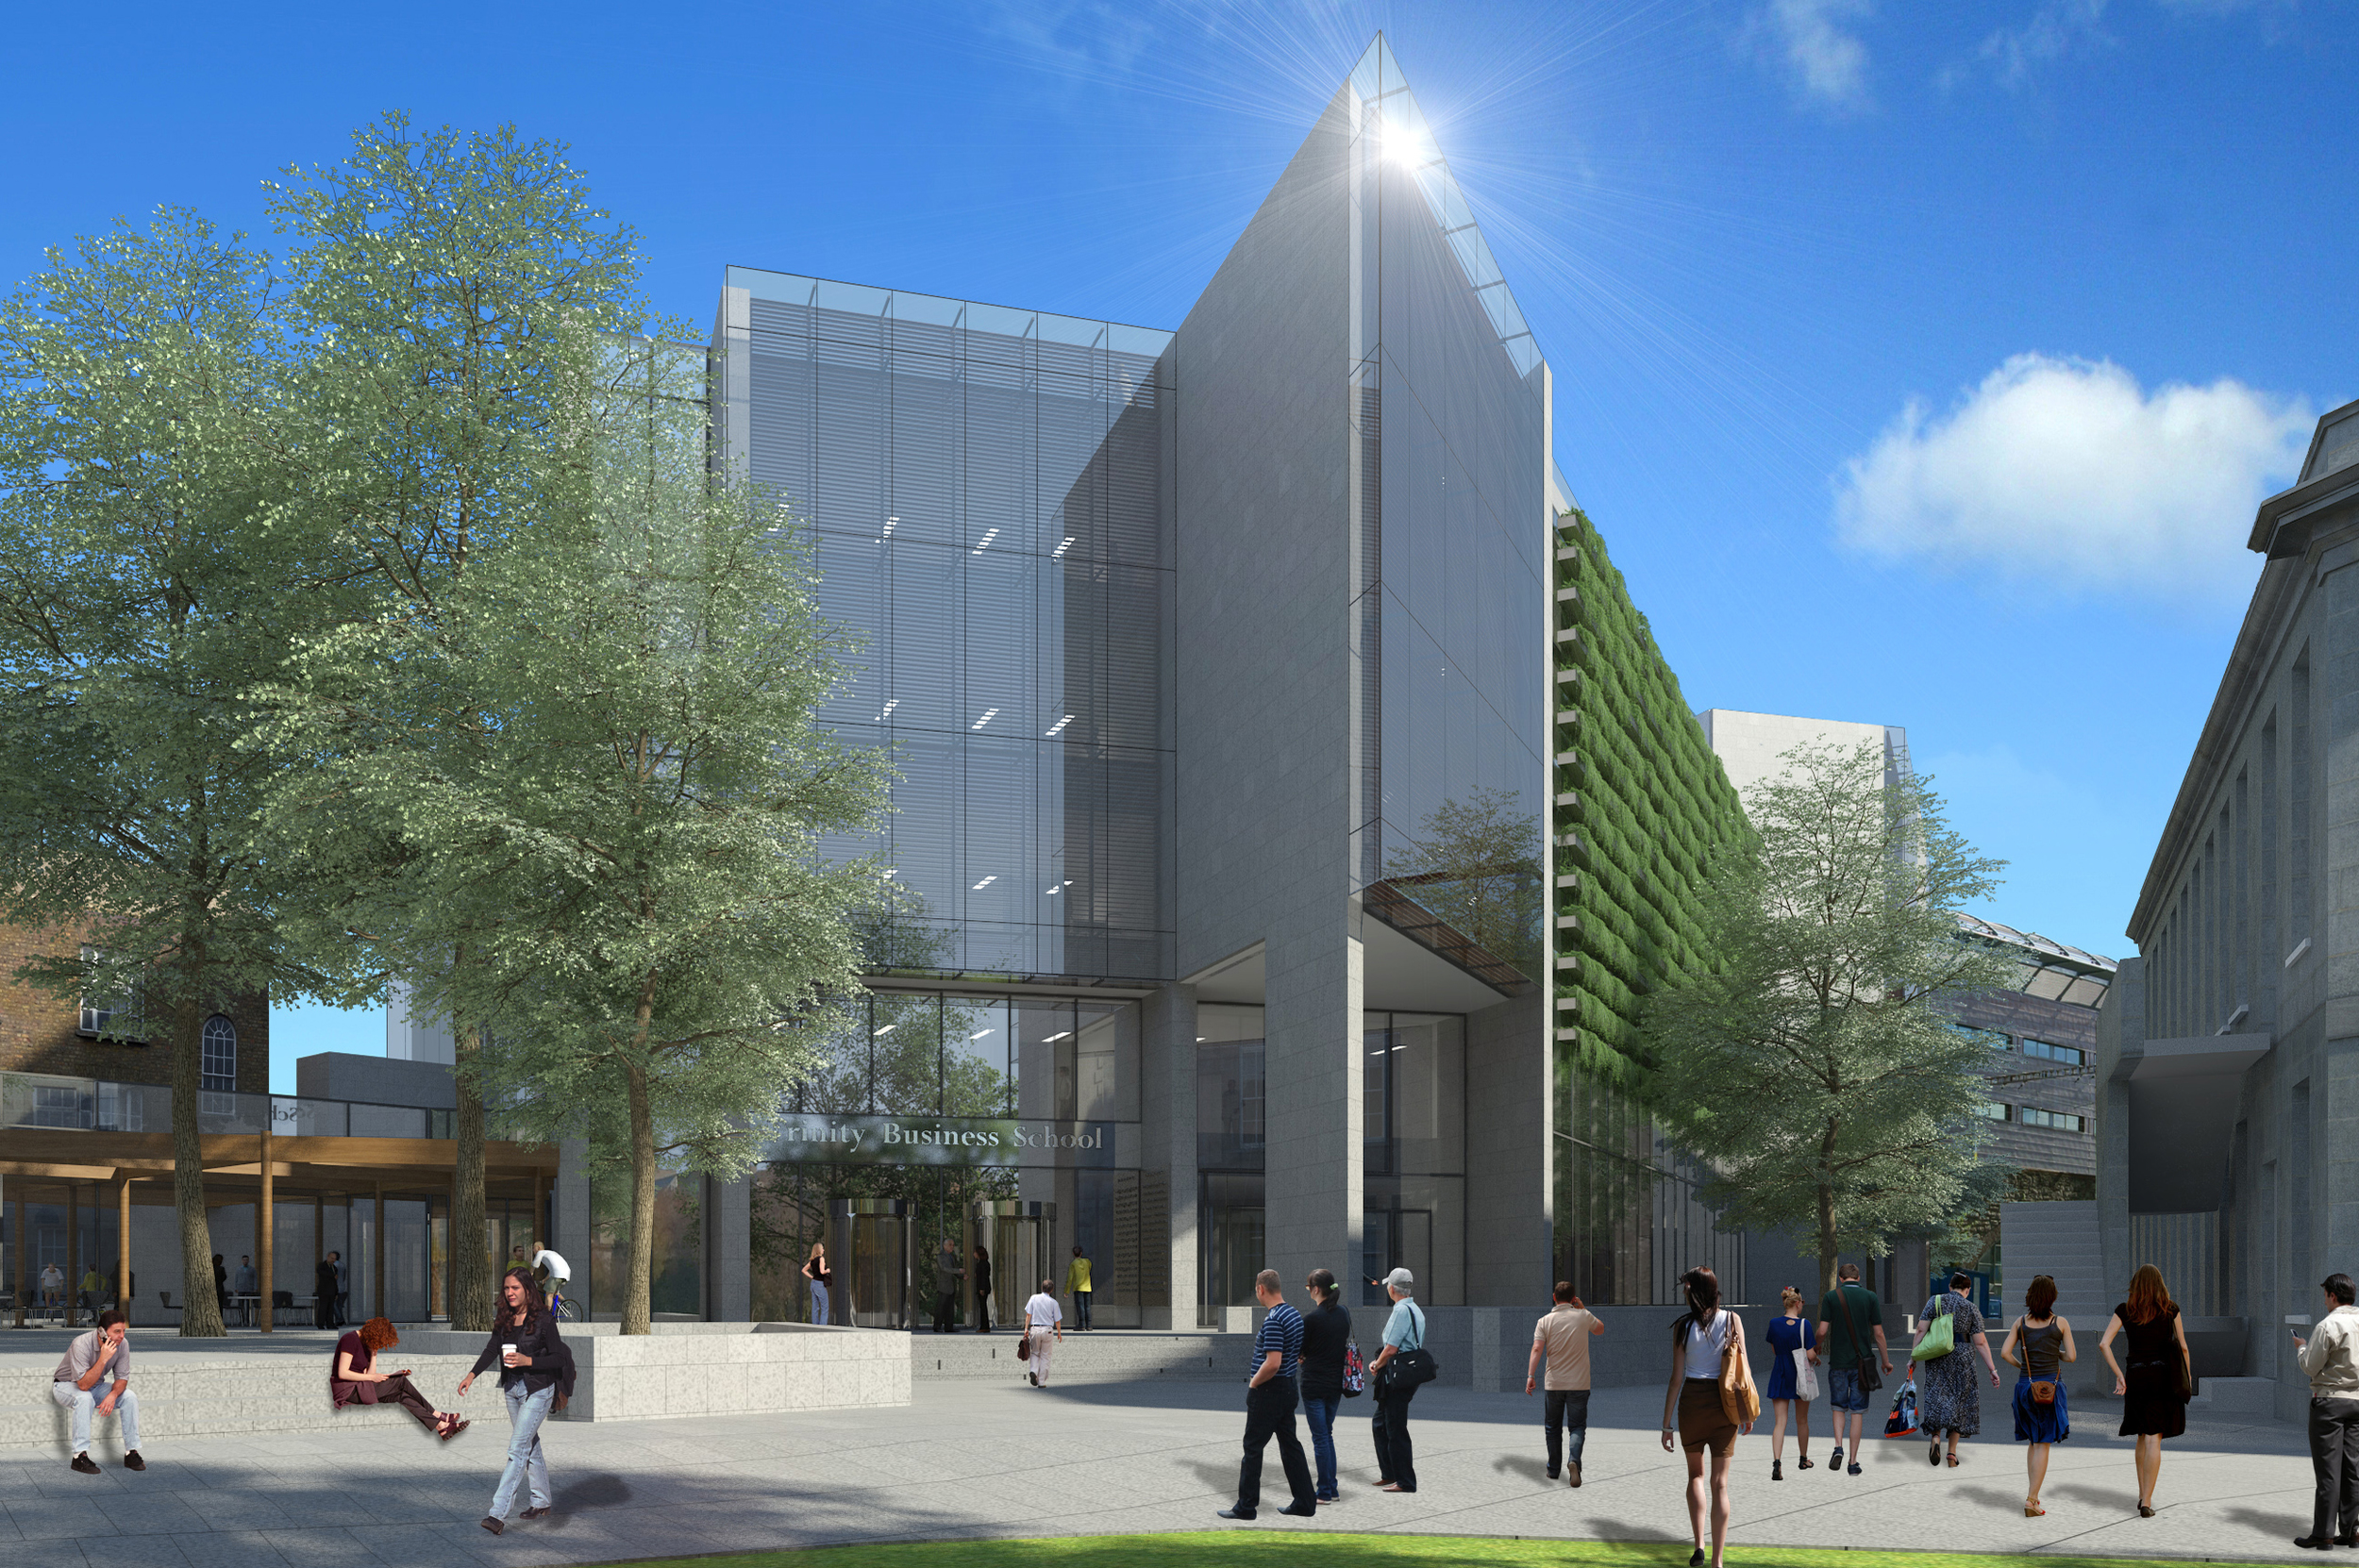 Planned Trinity Business School